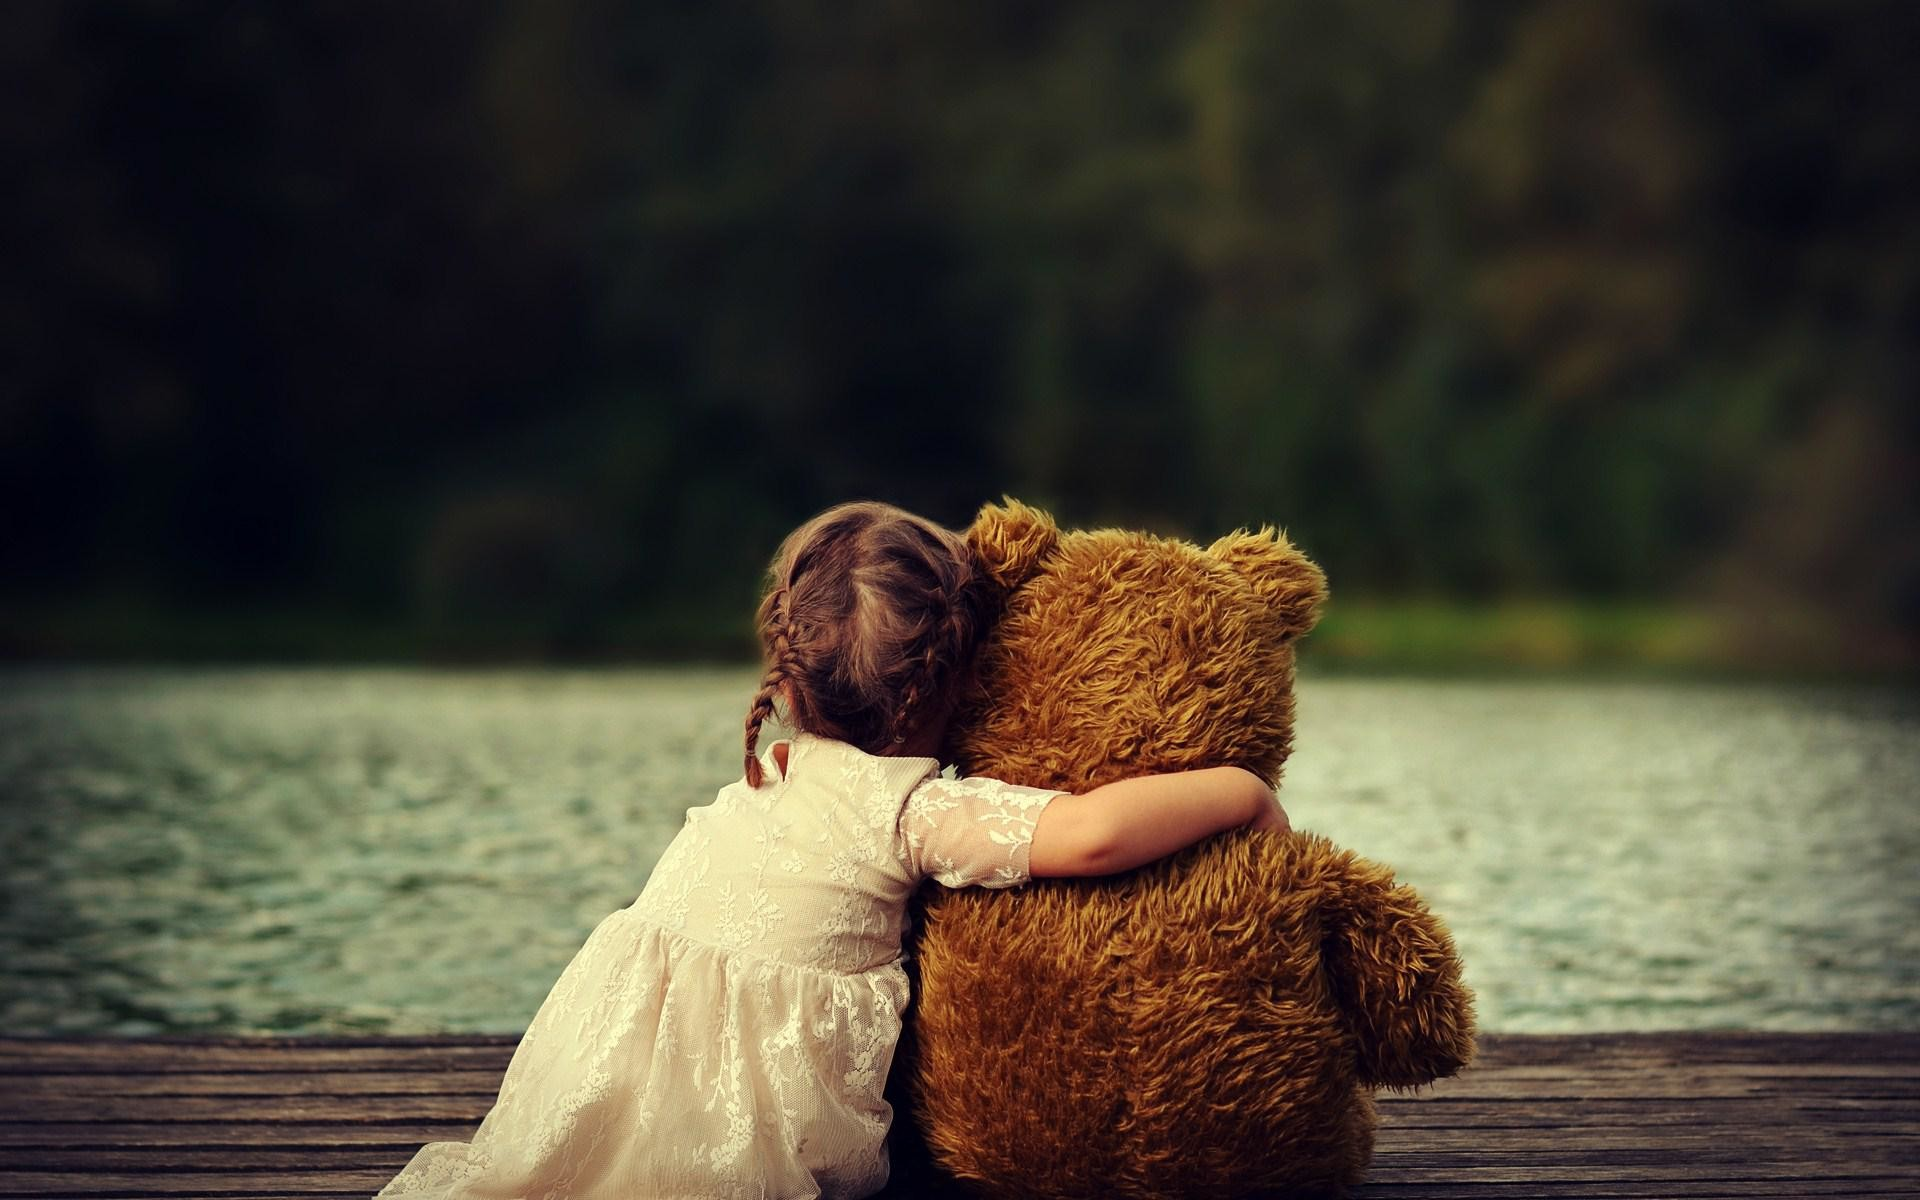 Res: 1920x1200, Cute Teddy Bear wallpapers(20 wallpapers) - My Free Wallpapers Hub